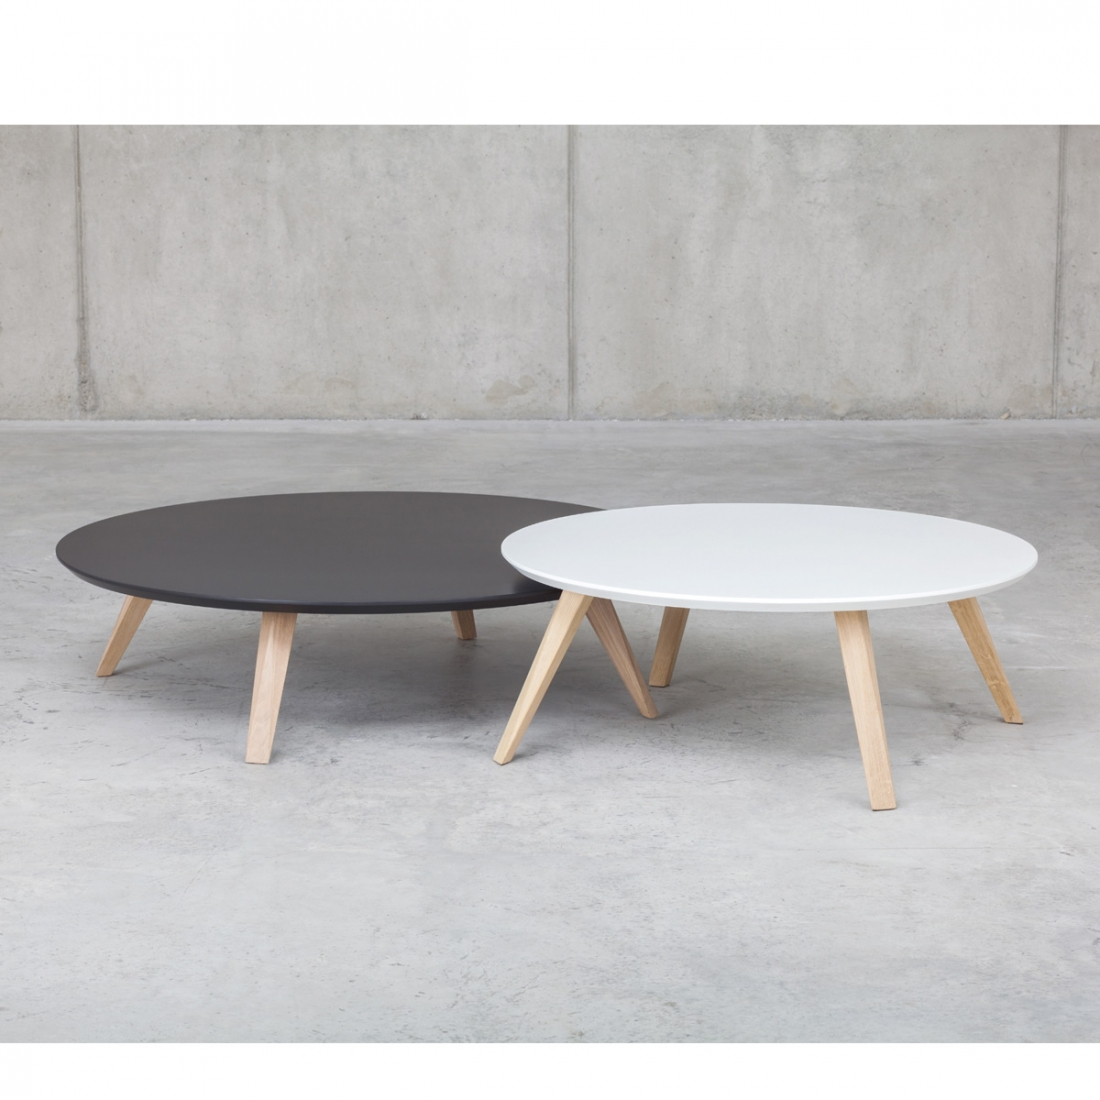 Table basse en bois prostoria zendart design - Table basse de salon ...